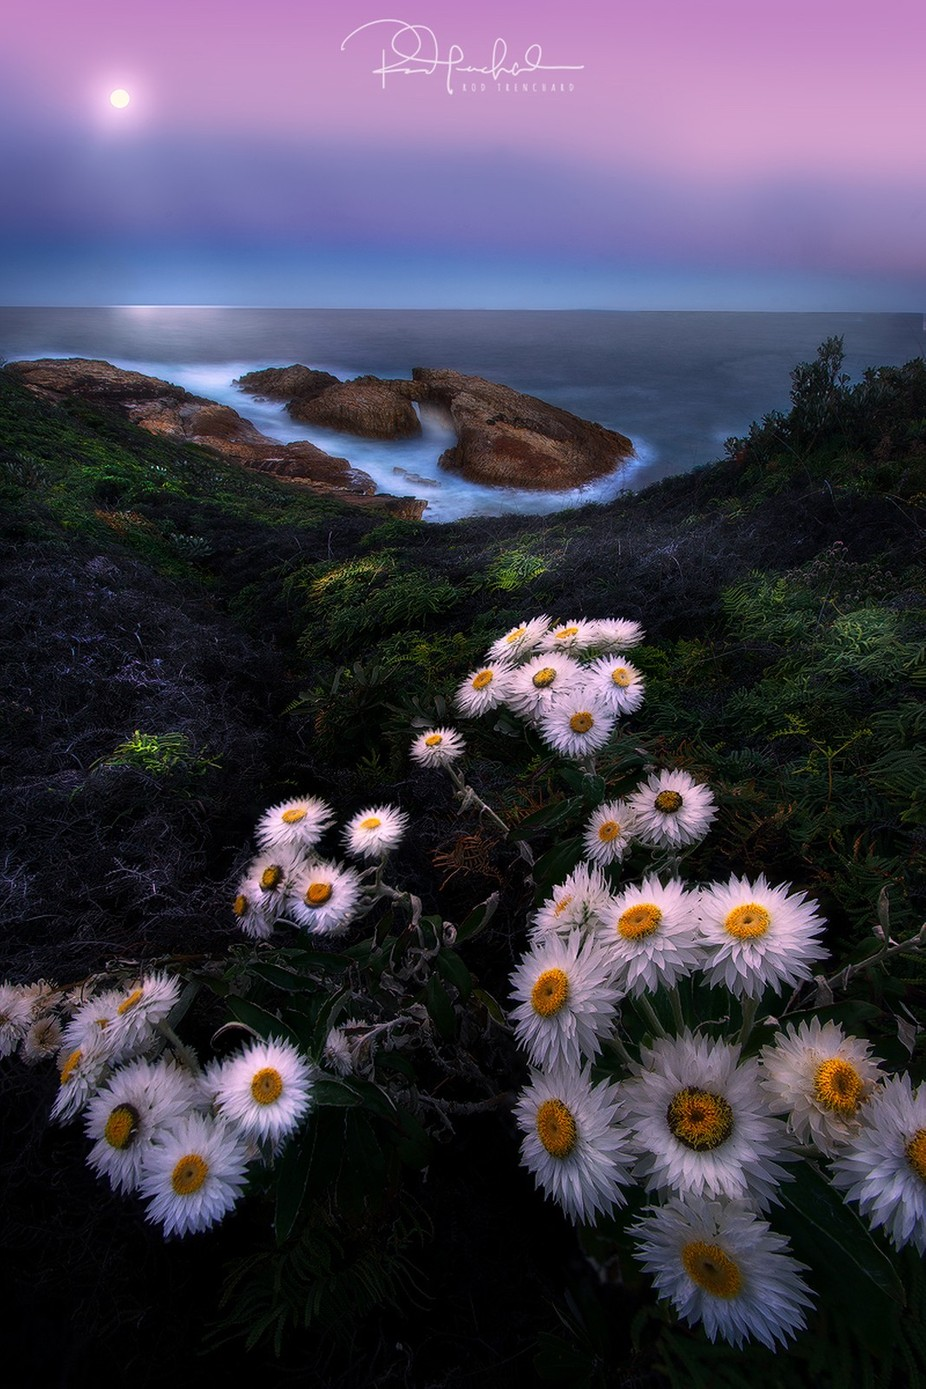 Dancing-at-dusk by rodneytrenchard - Beautiful Flowers Photo Contest